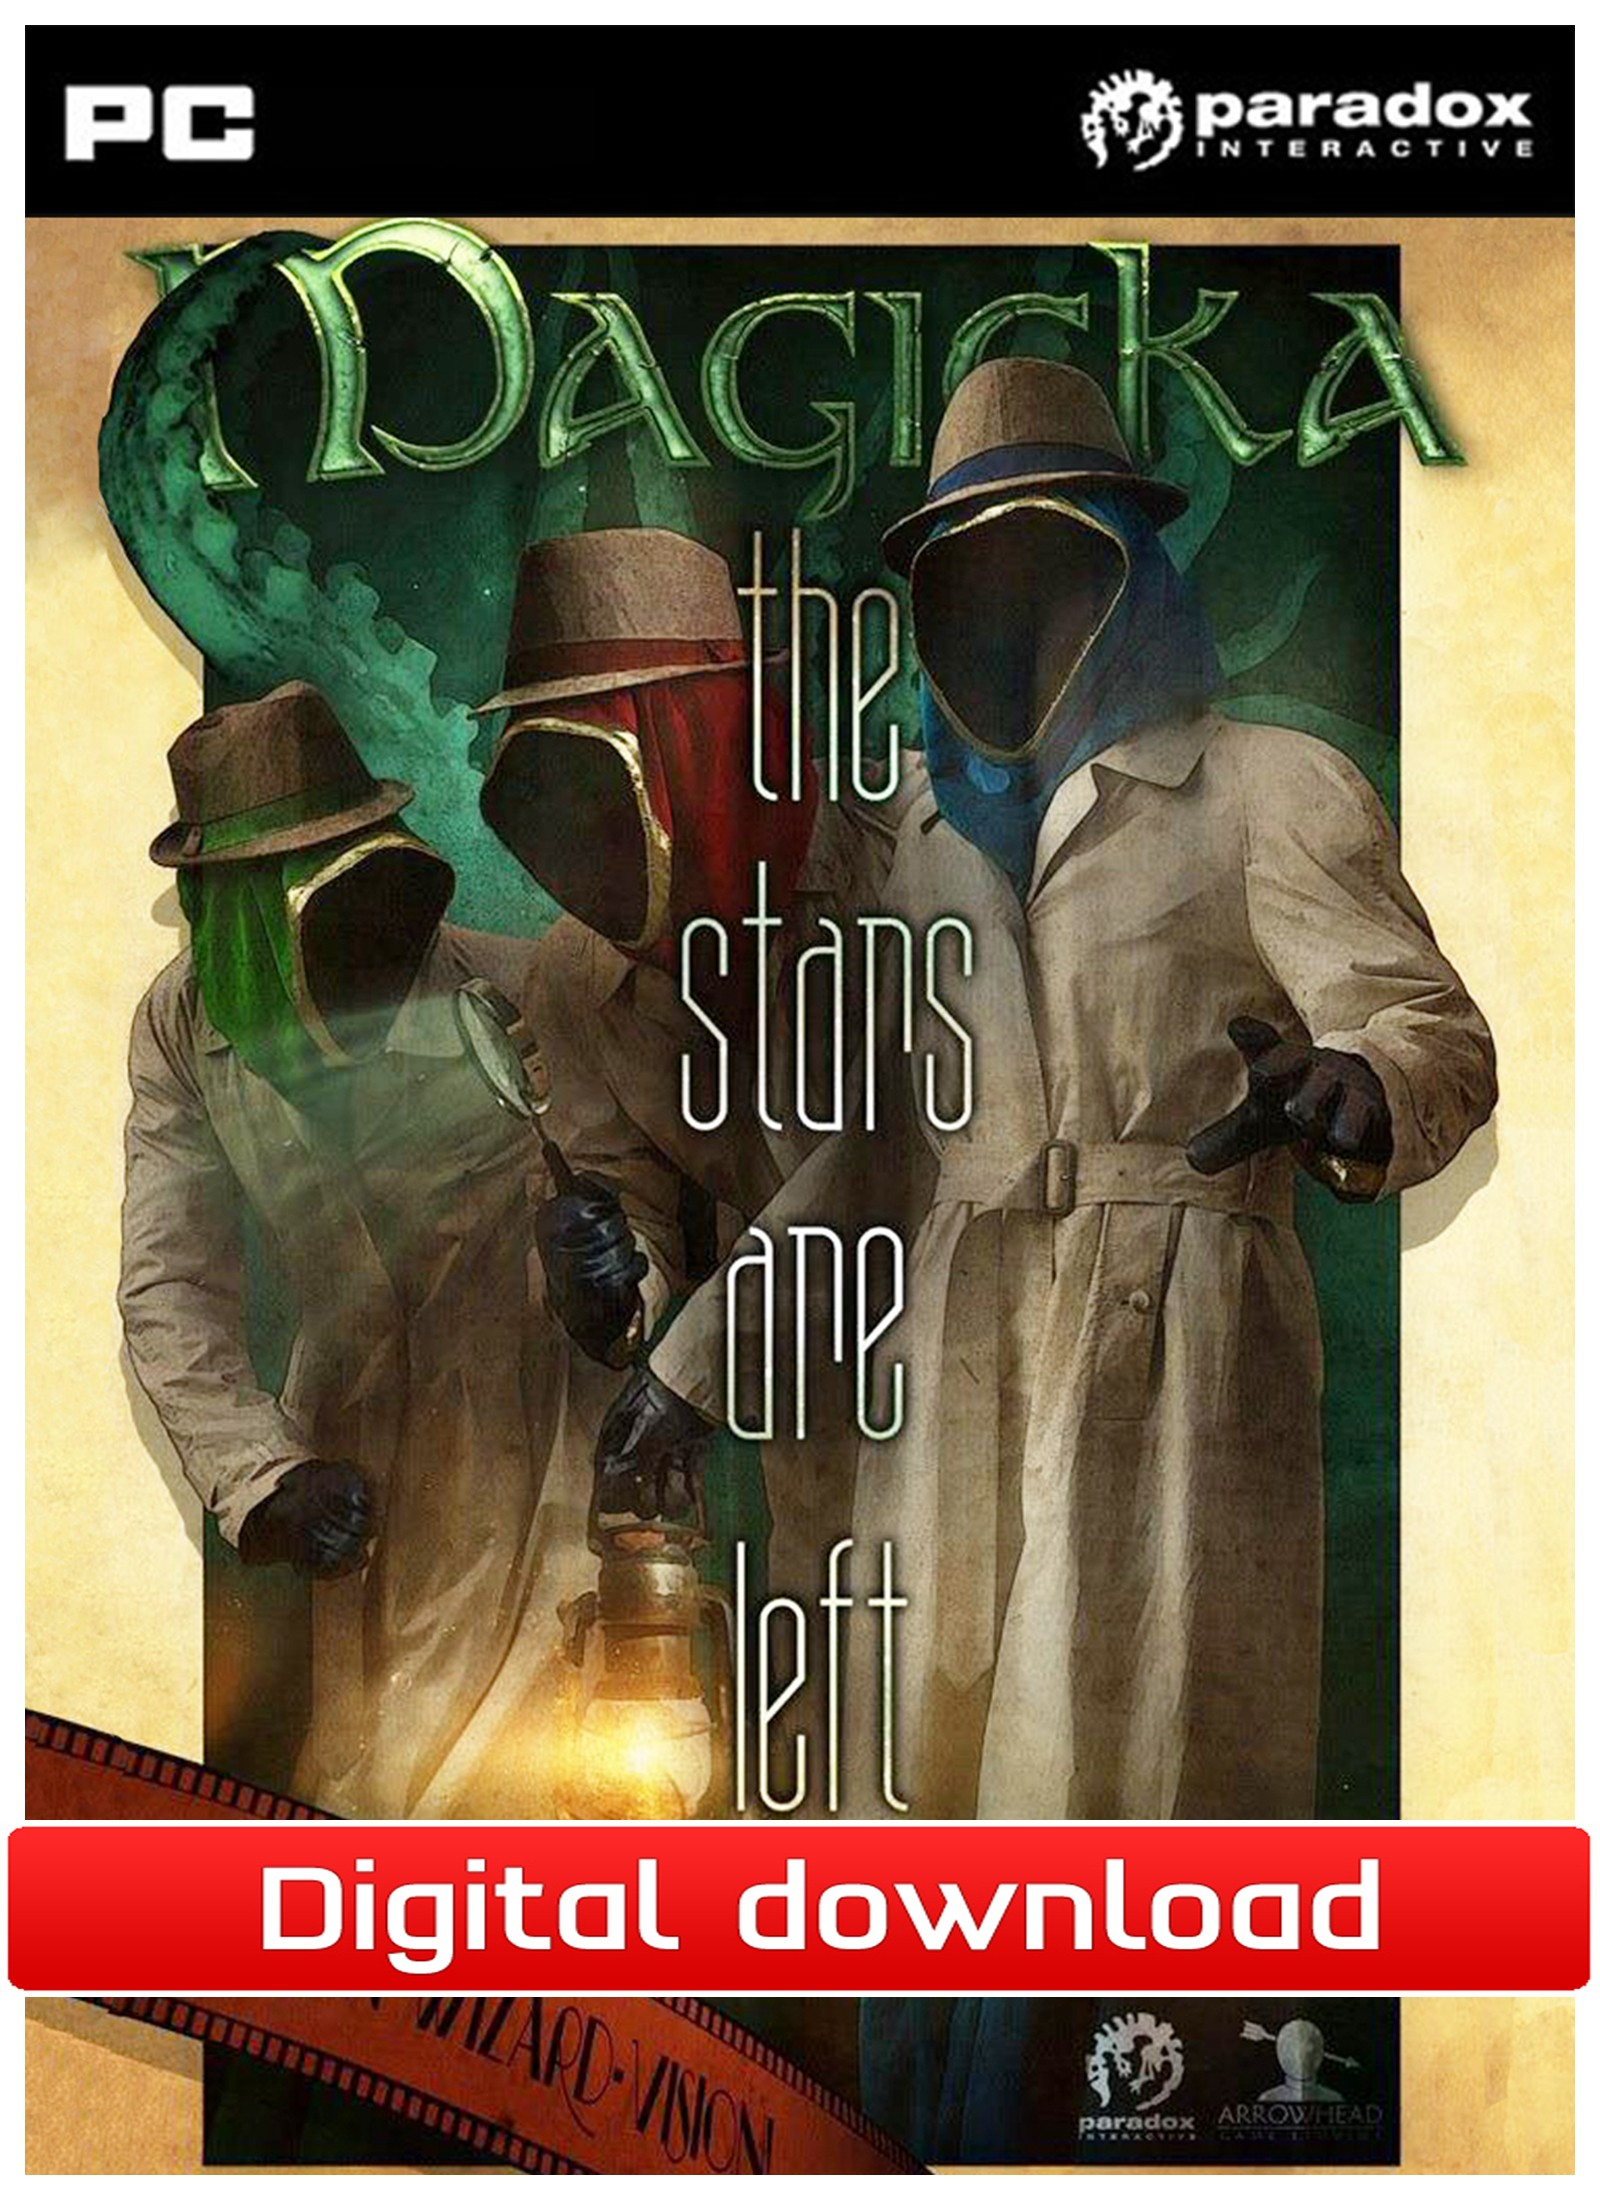 28123 : Magicka: DLC The Stars are Left (PC nedlastning)